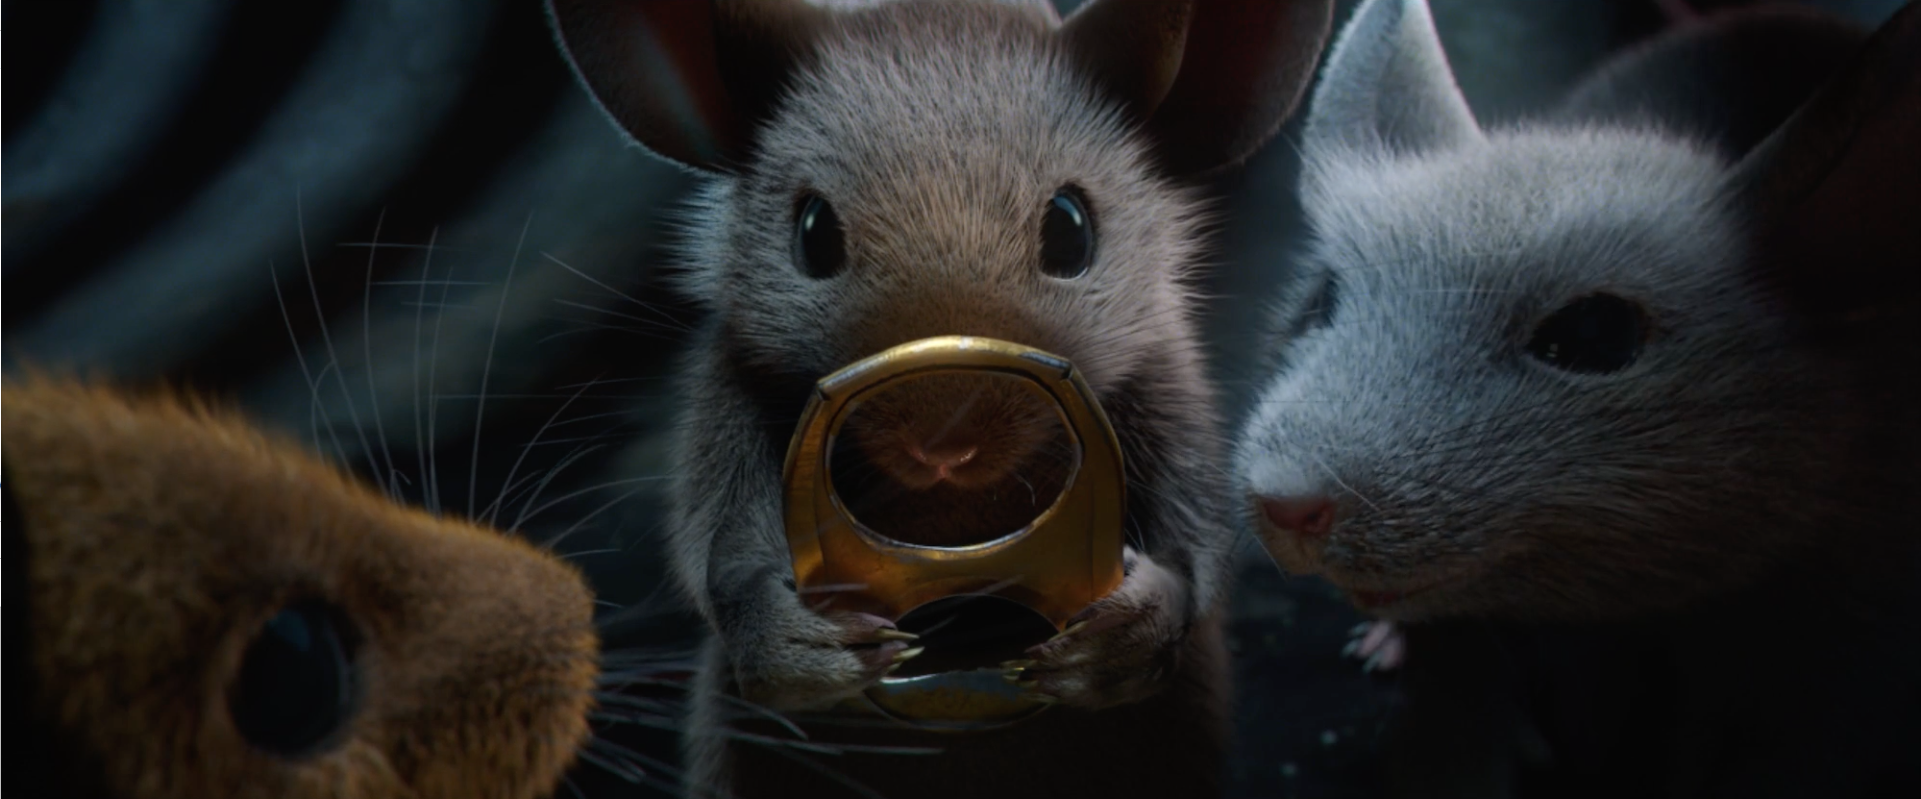 Check out this animated Lord of the Rings homage… with mice